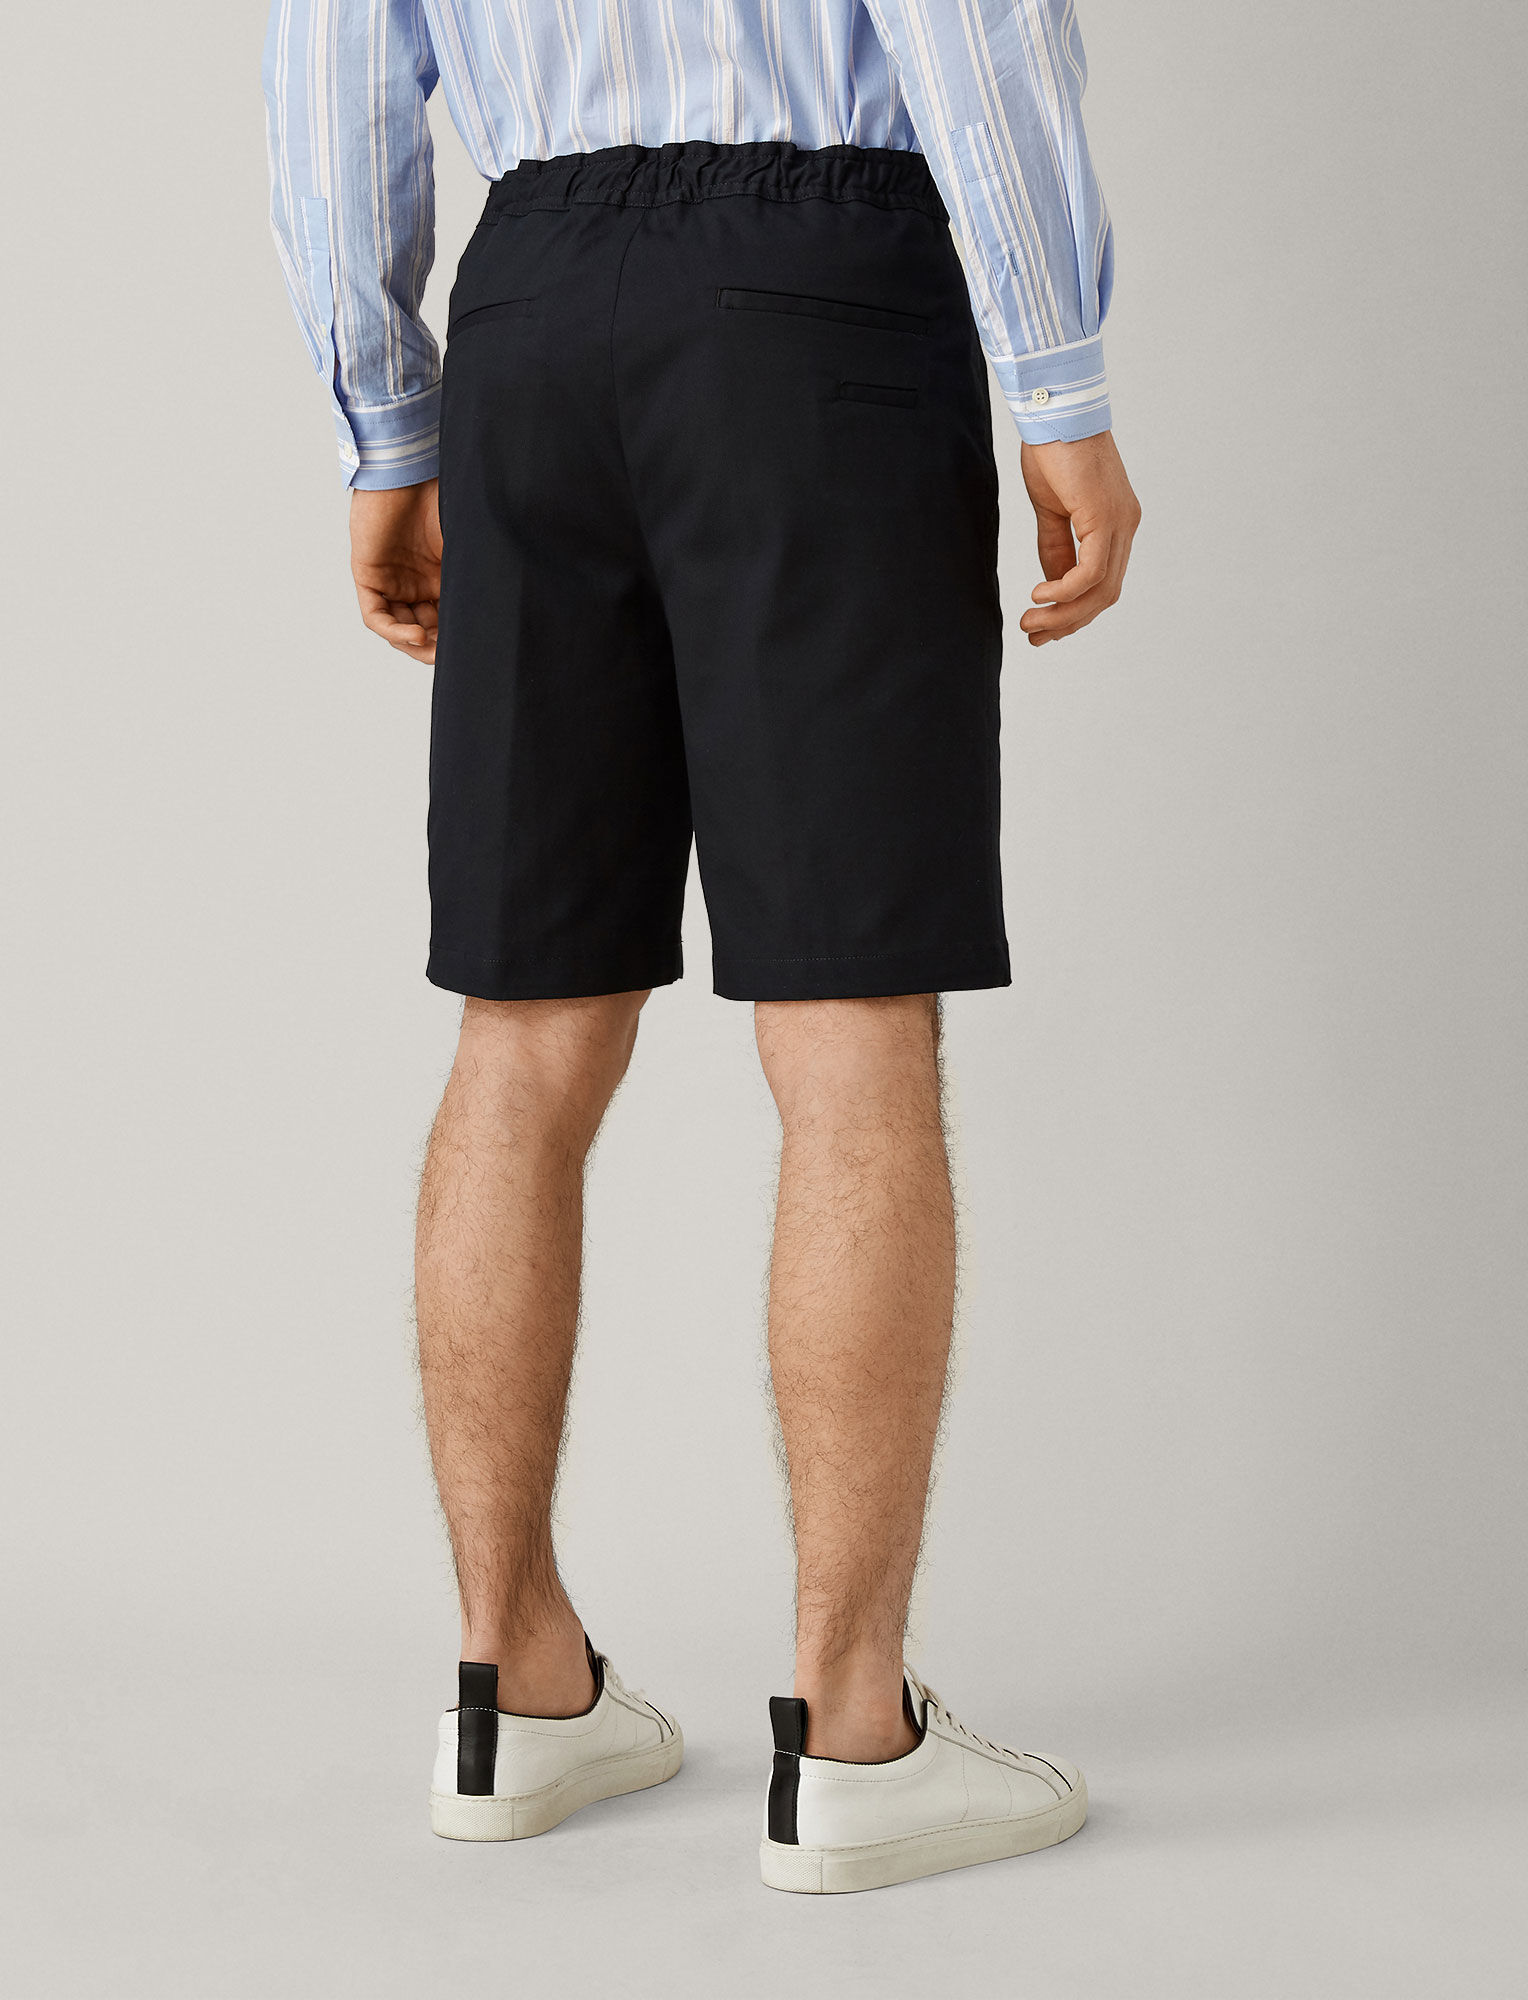 Joseph, Pins Cotton Drill Stretch Shorts, in NAVY